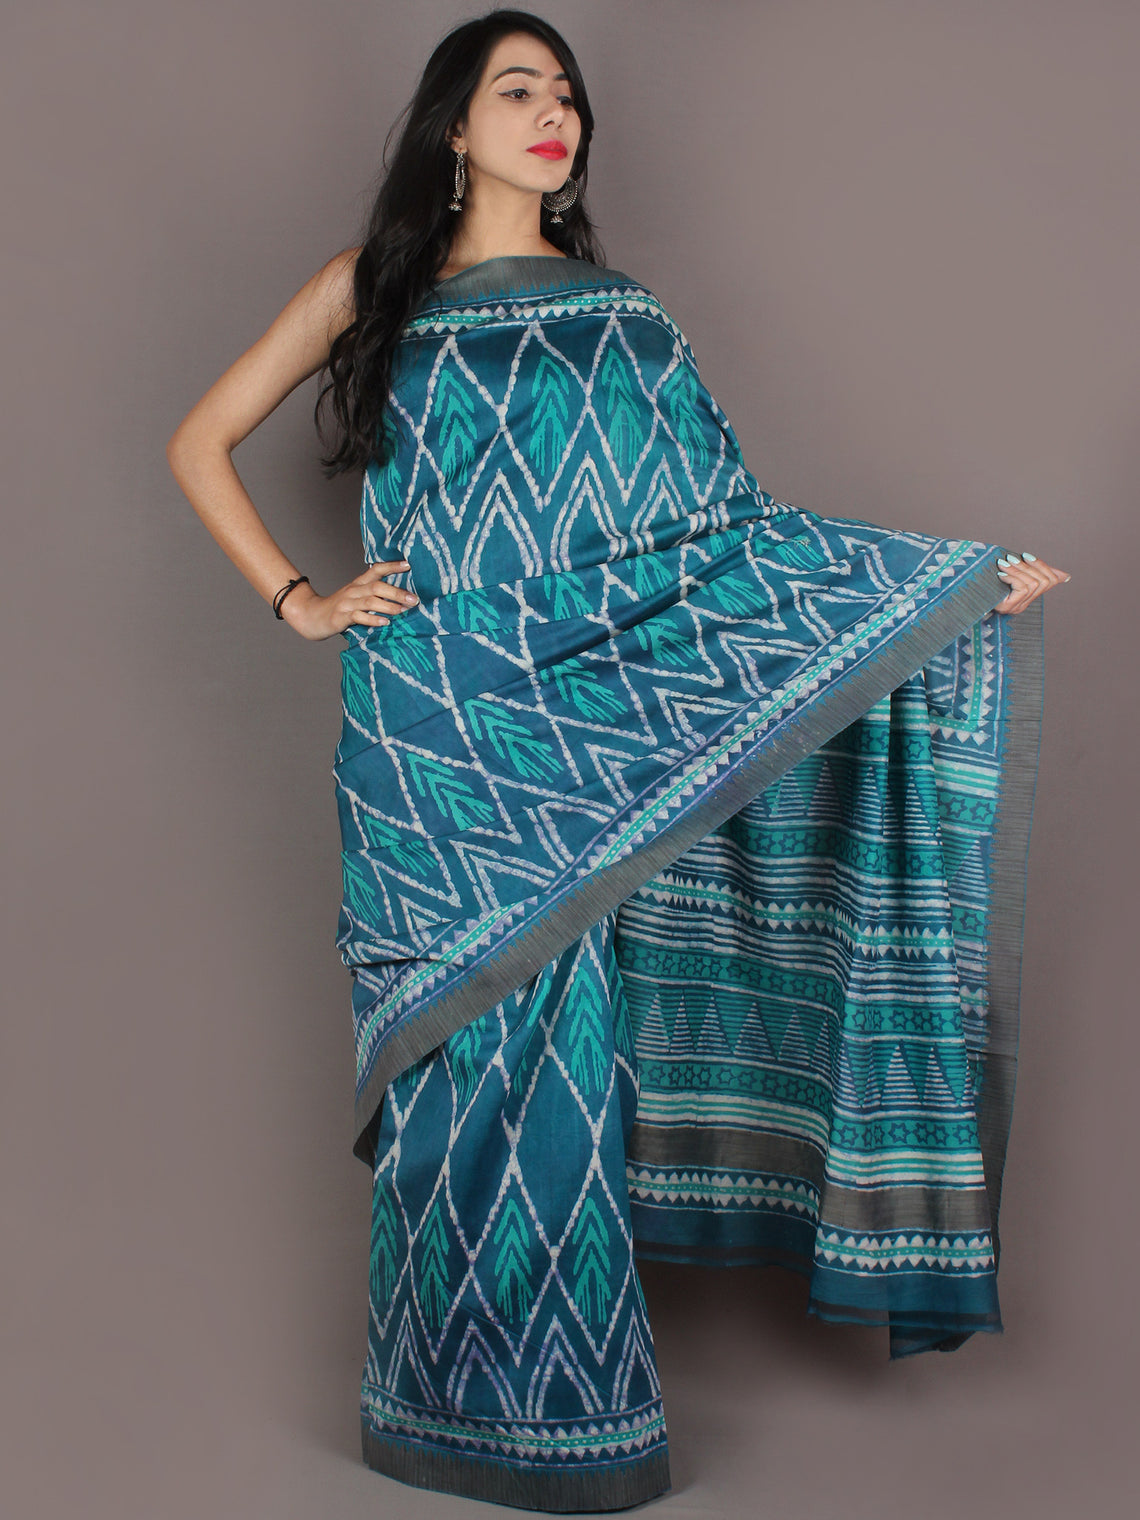 Teal Blue White Hand Block Printed in Natural Colors Chanderi Saree With Geecha Border - S031701002